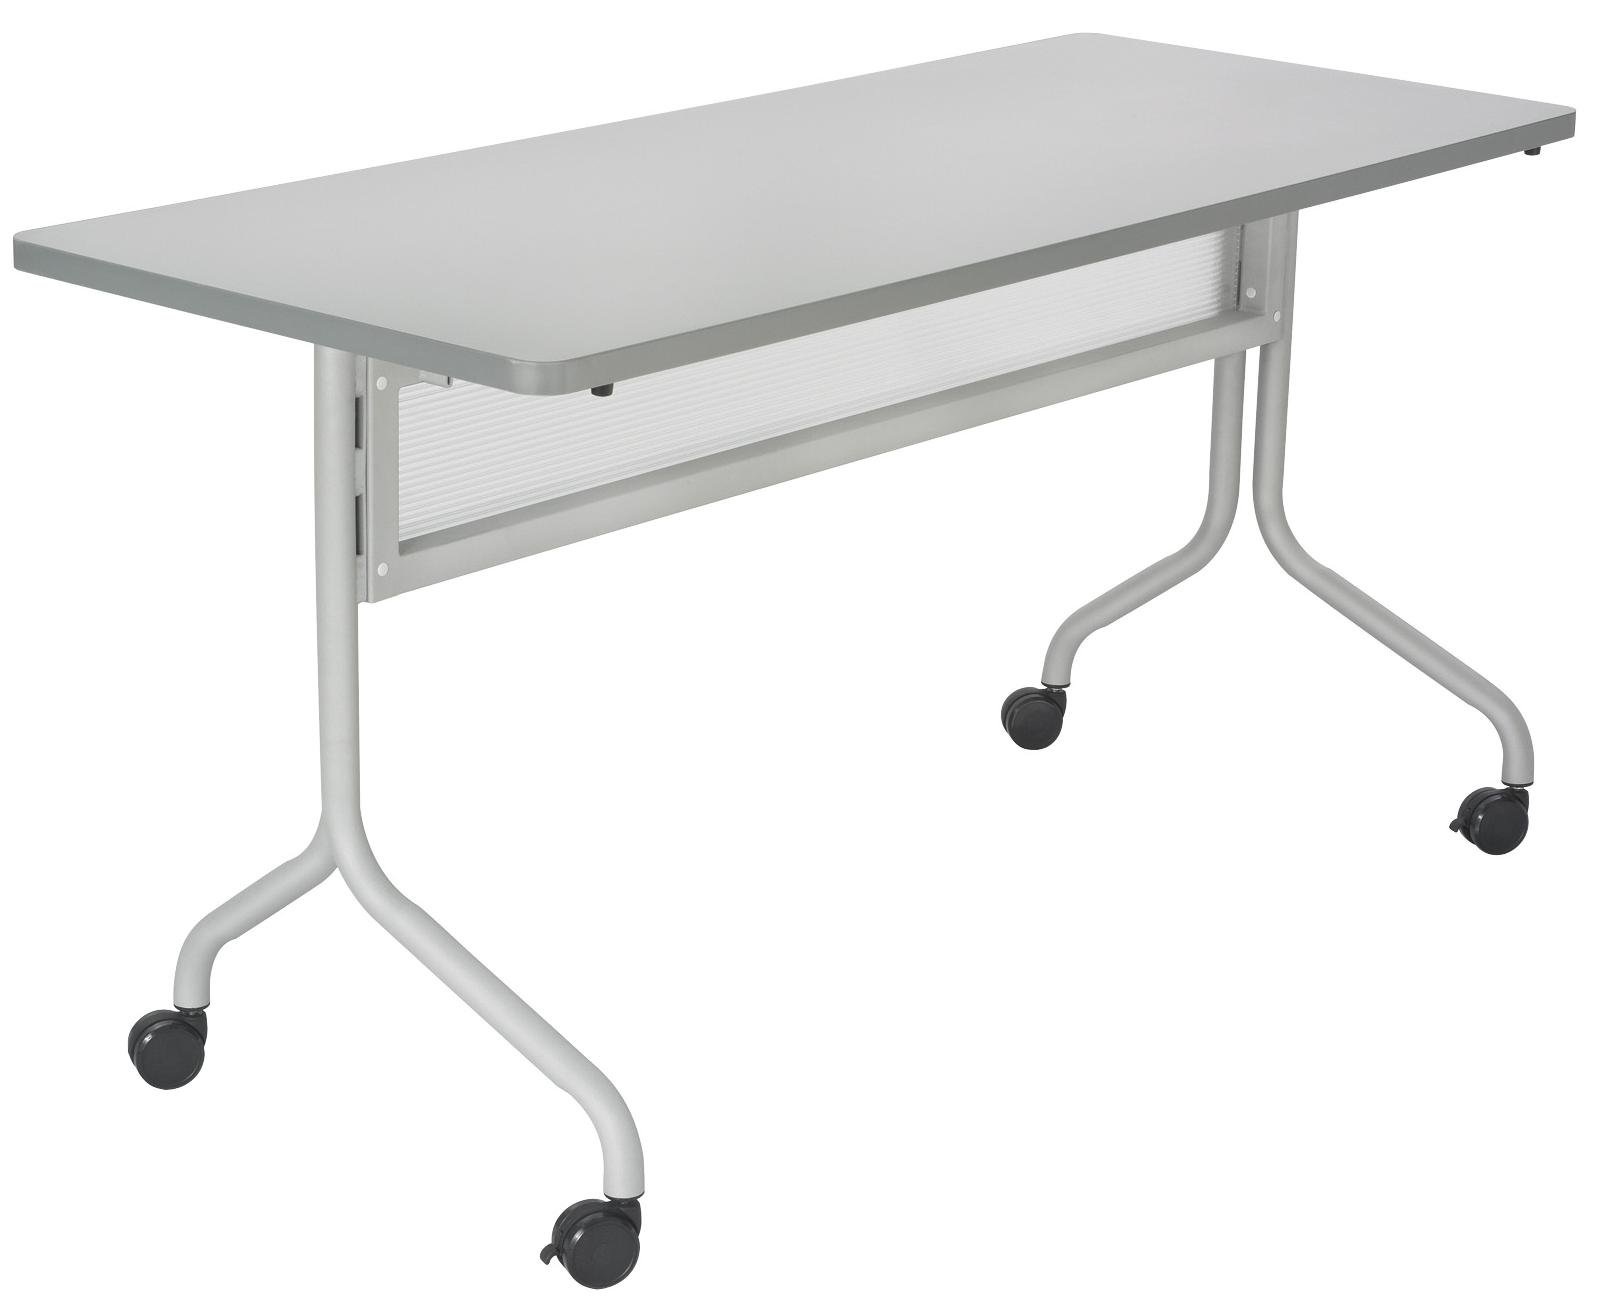 Safco Products 2070GRSL Impromptu Rectangle Mobile Training Table, 48''W x 24''D, Gray Top/Silver Base